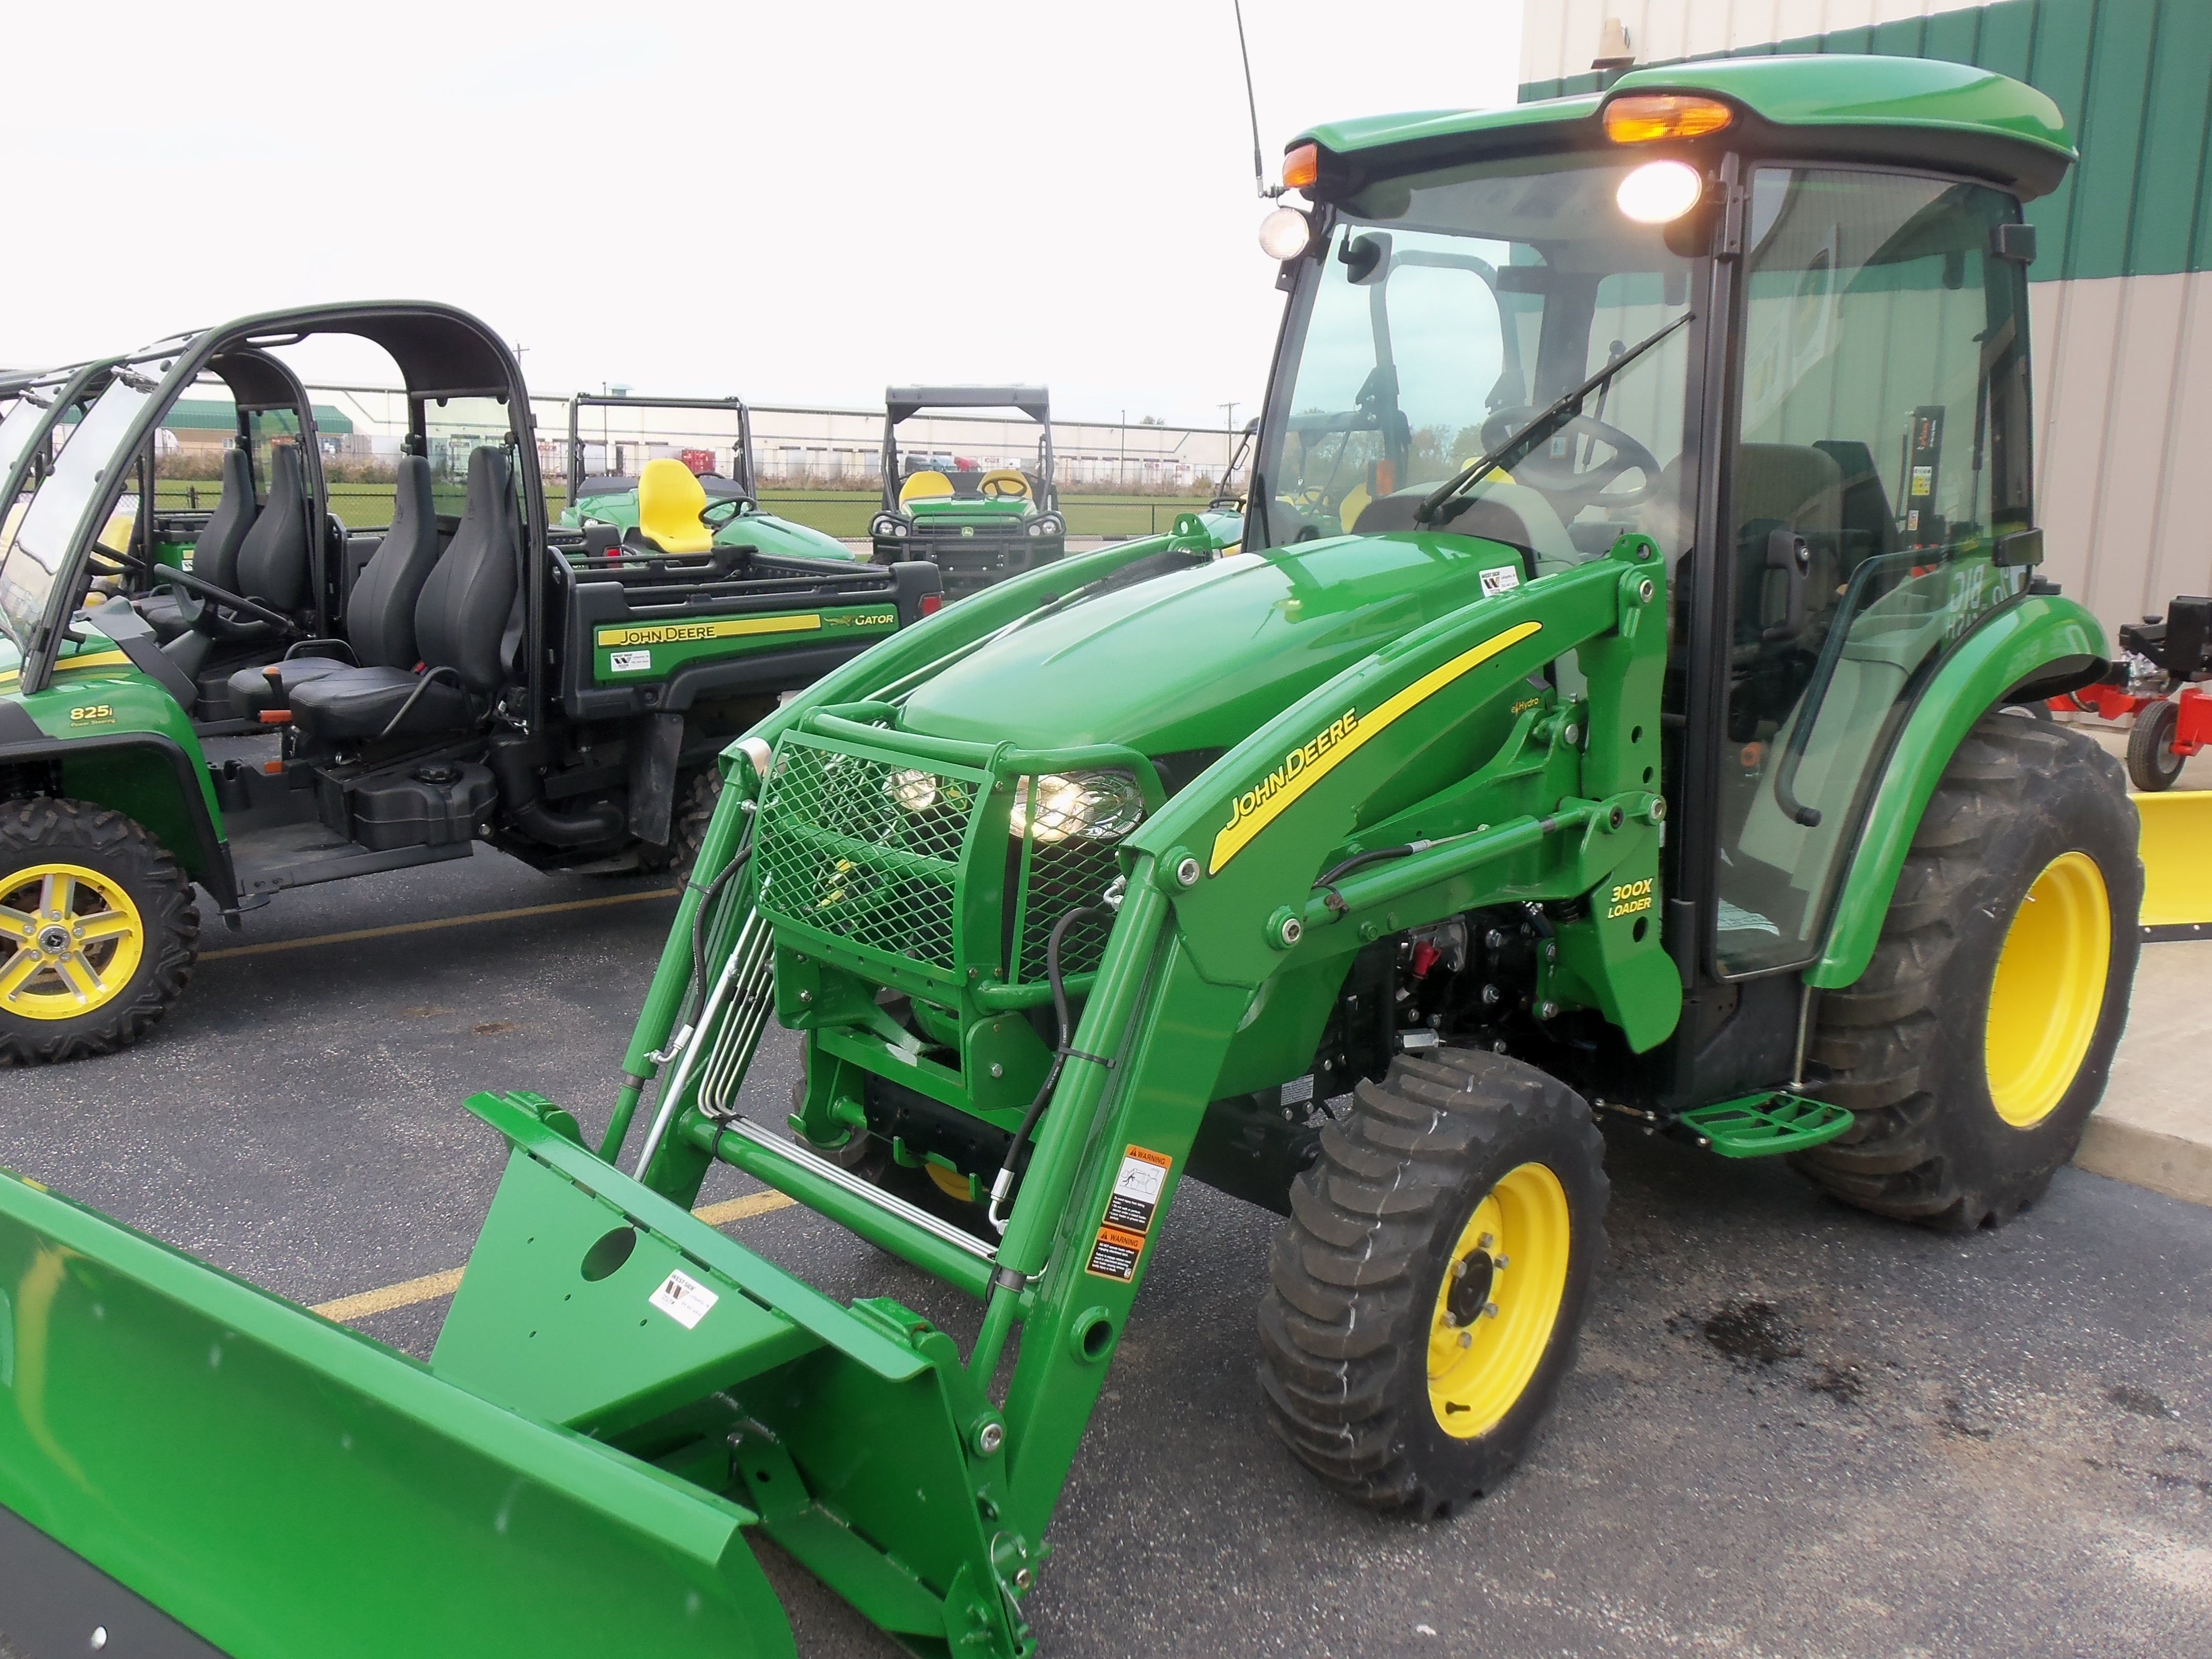 John Deere 3320 cab tractor with lights on.33 engine, 26 PTO hp,3,570 lbs